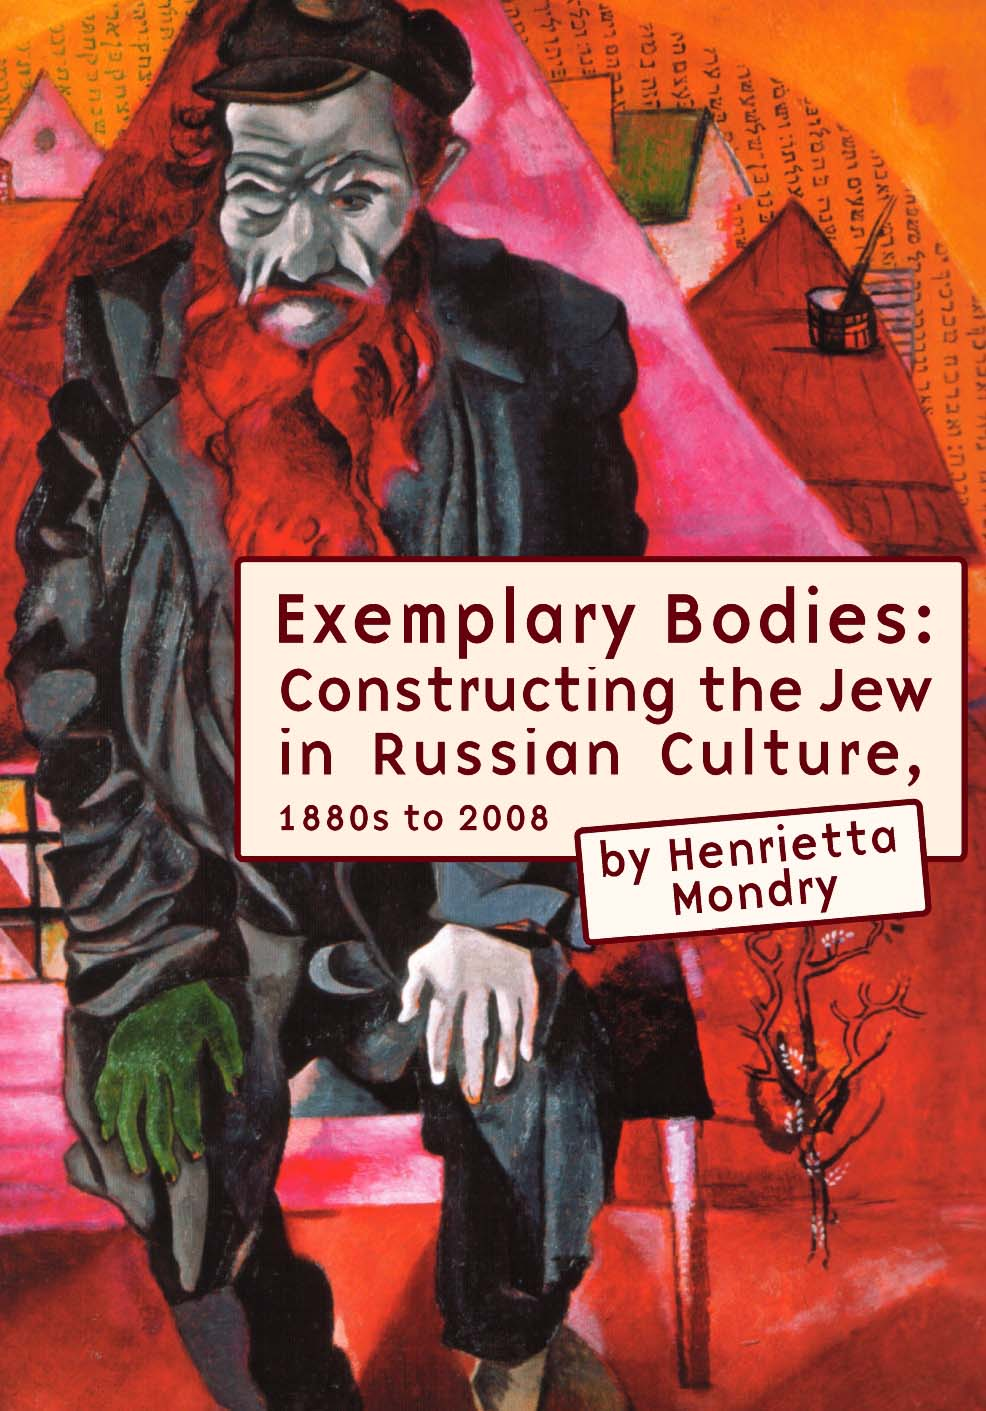 Exemplary Bodies: Constructing the Jew in Russian Culture, 1880s to 2008  Henrietta Mondry   Read on JSTOR  |  Purchase book